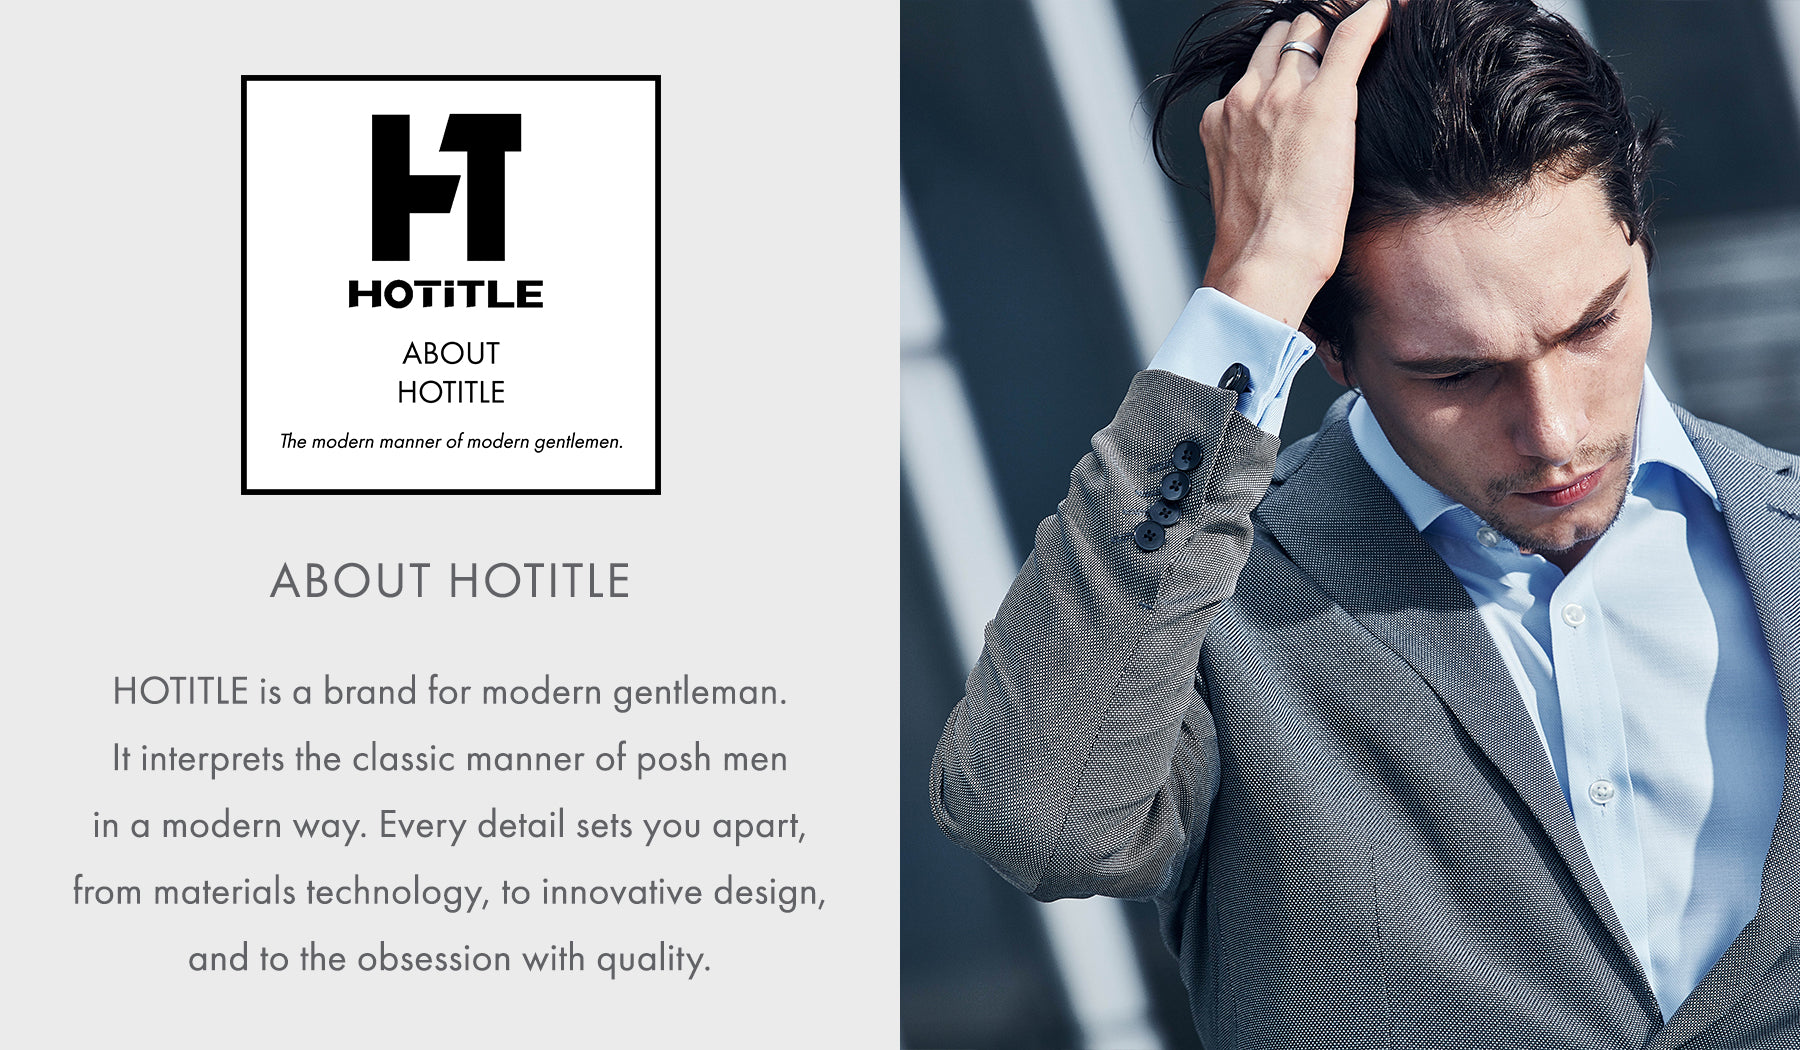 About HOTITLE